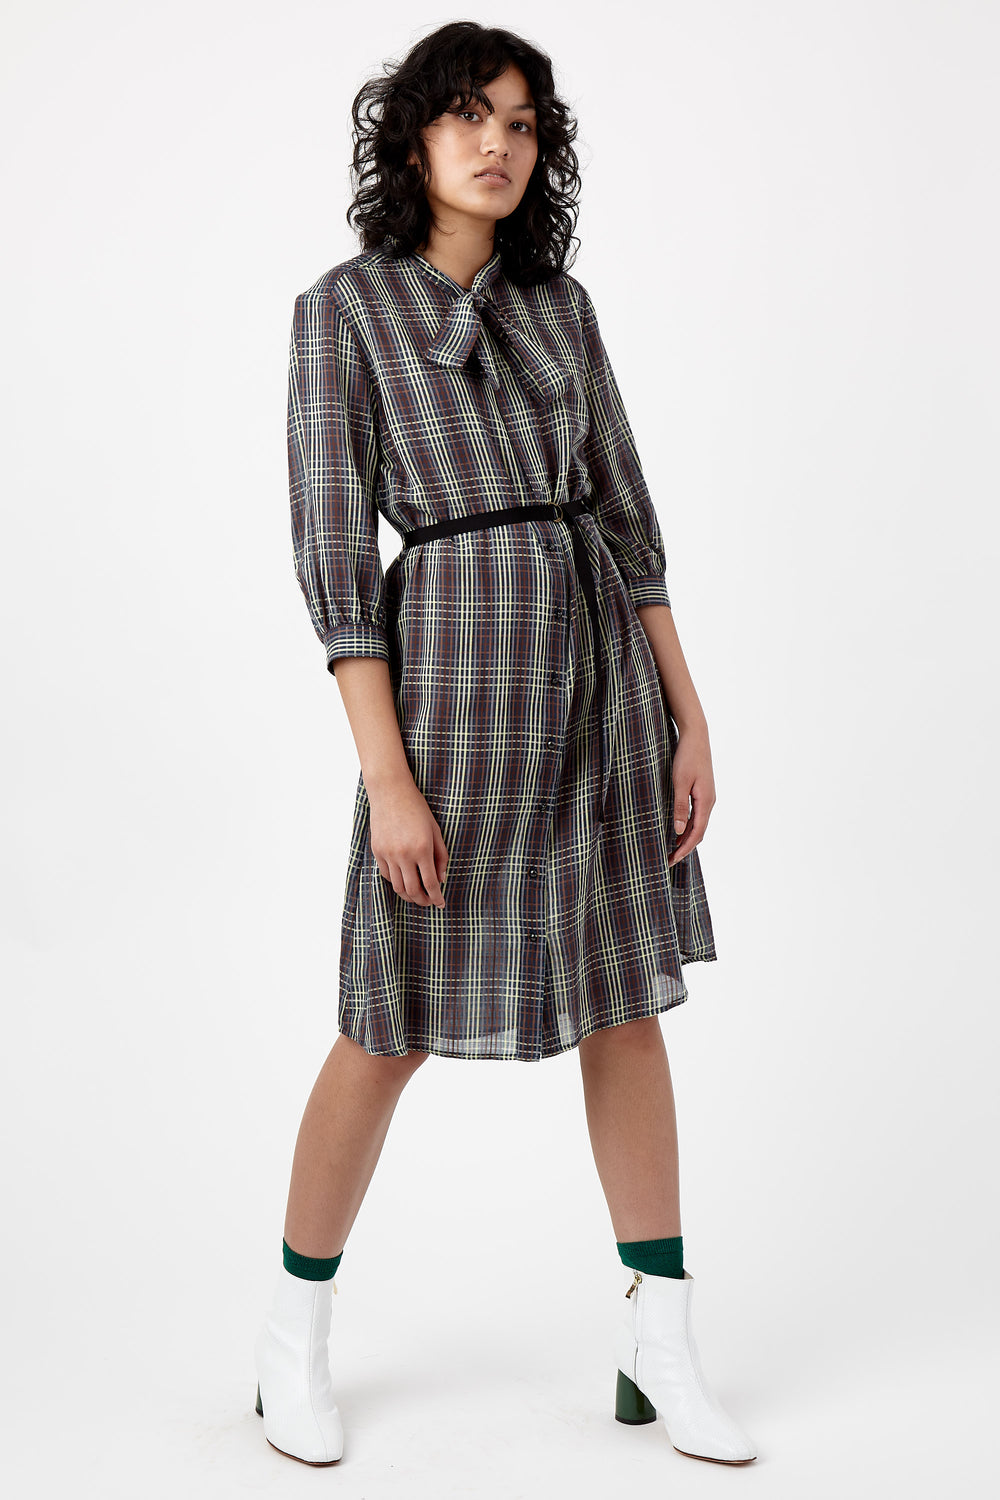 Checkers shirt dress